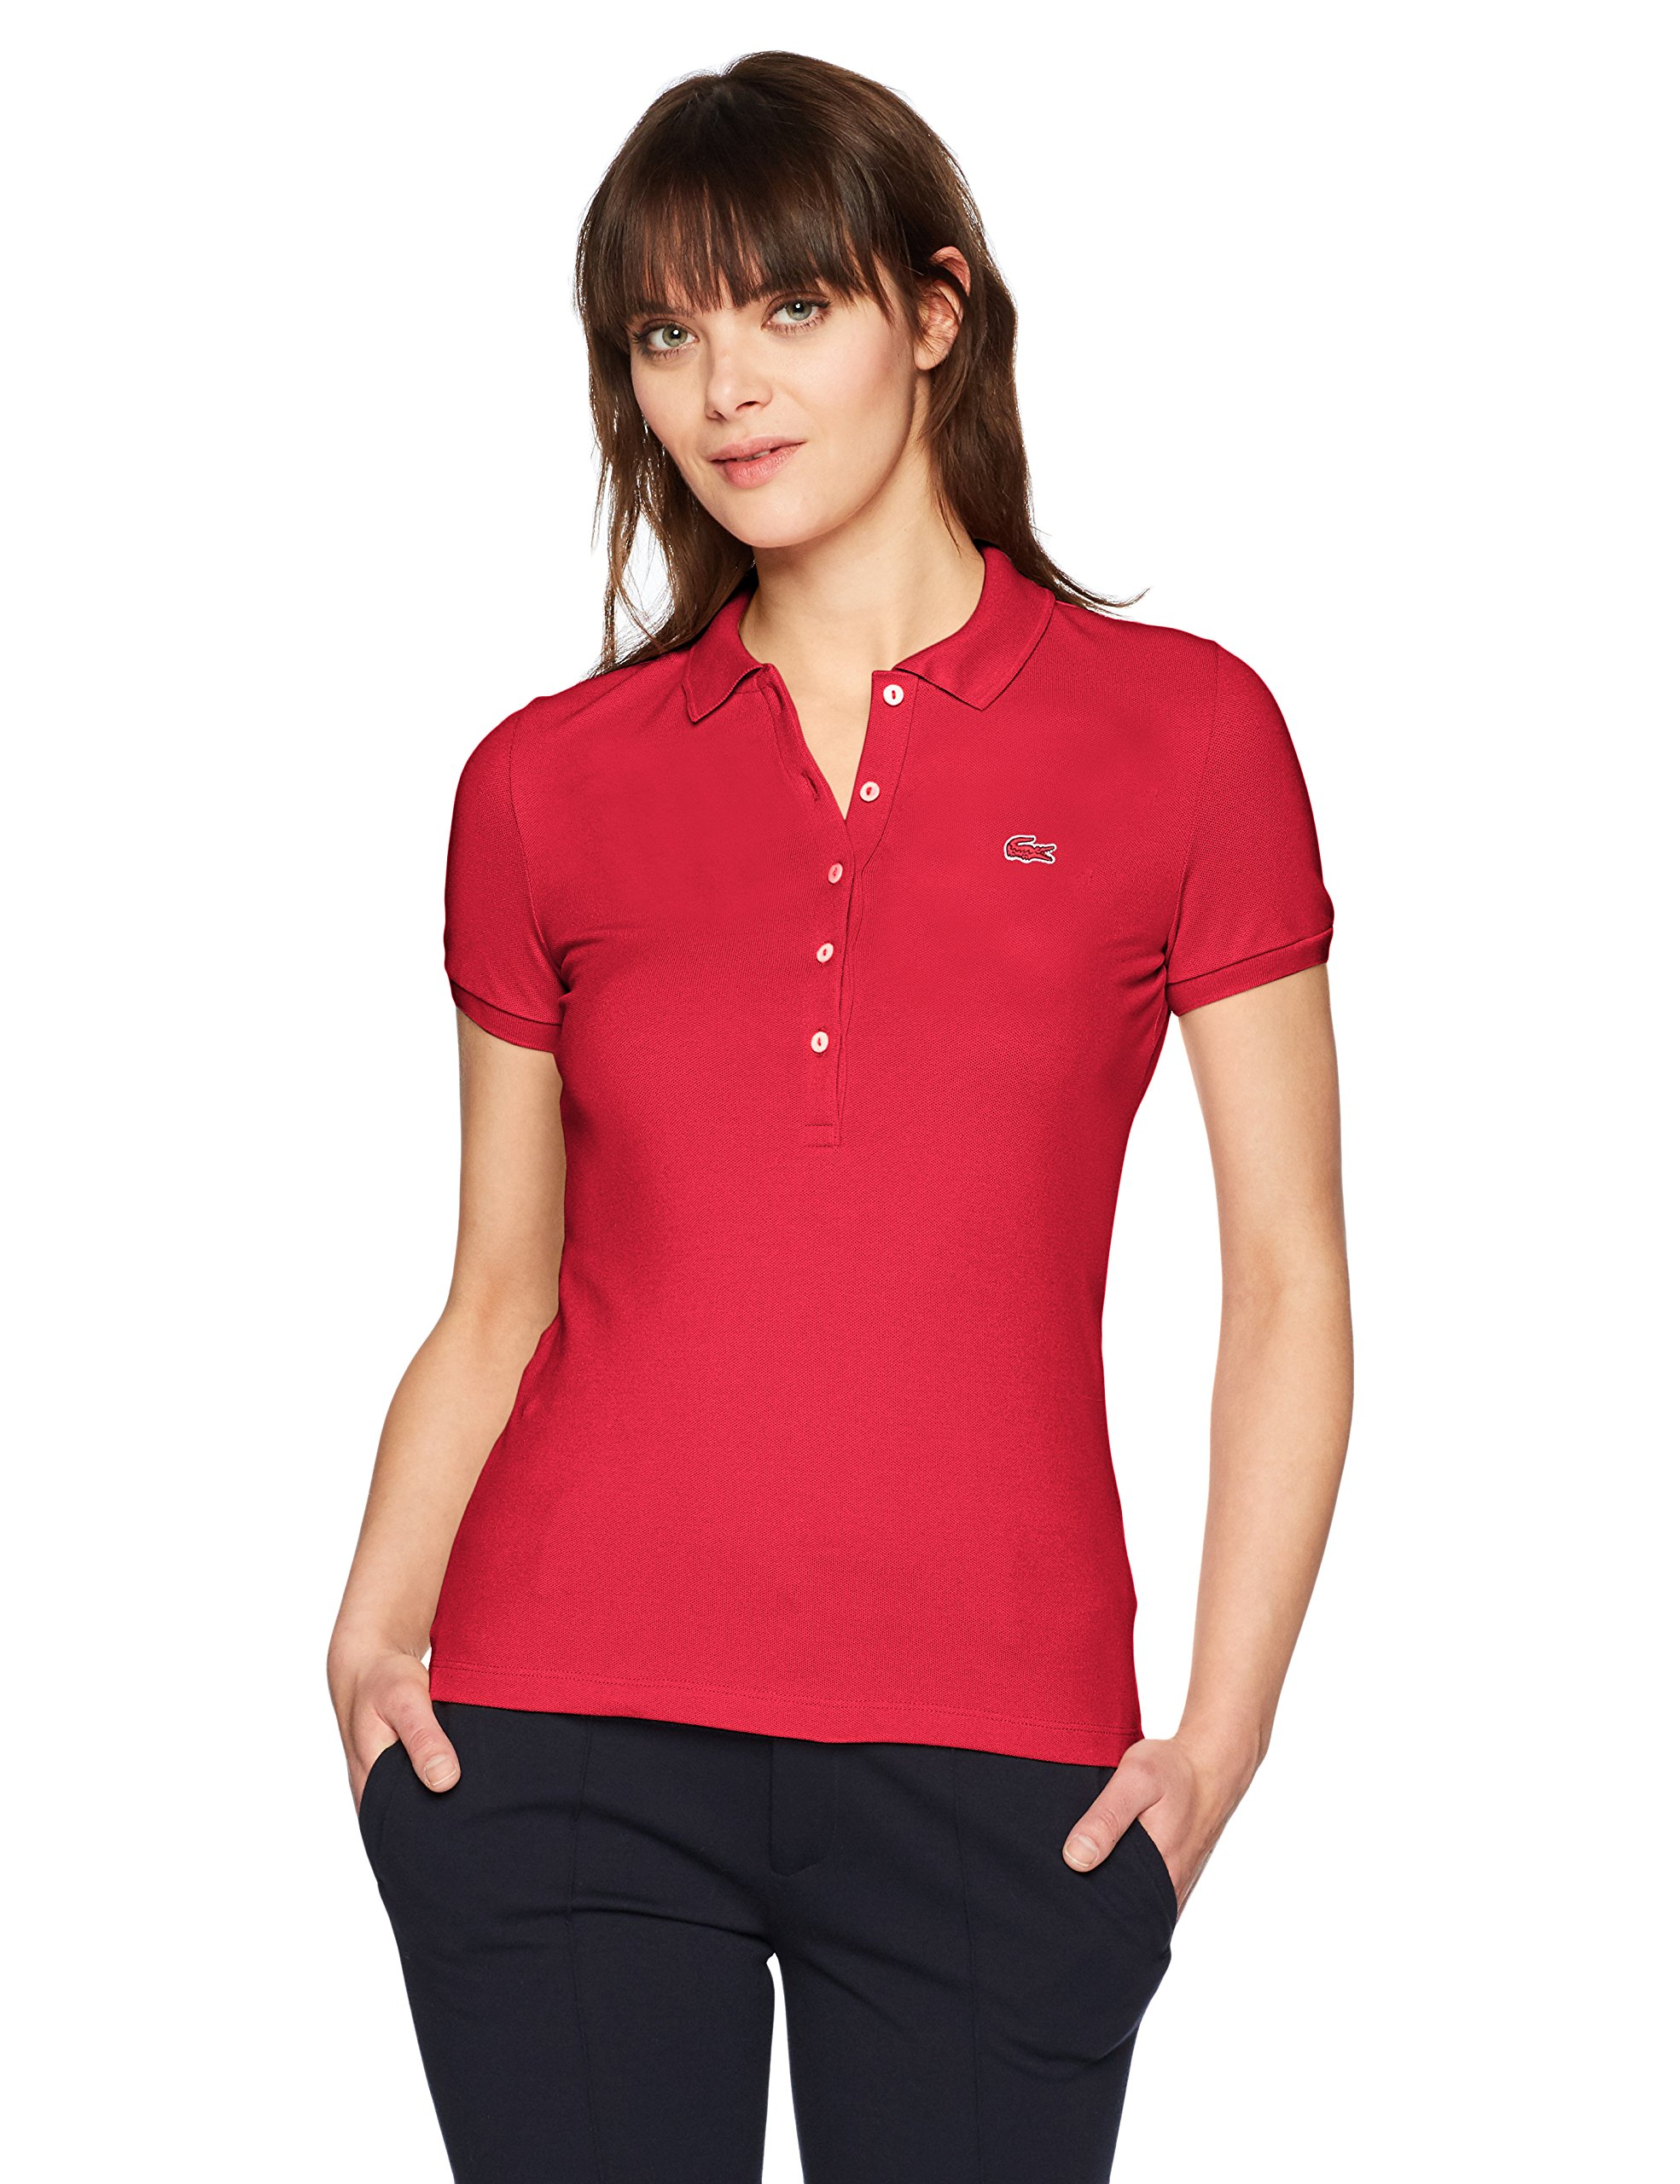 ad3a5844dc17 Galleon - Lacoste Women s Classic Short Sleeve Slim Fit Stretch Pique Polo